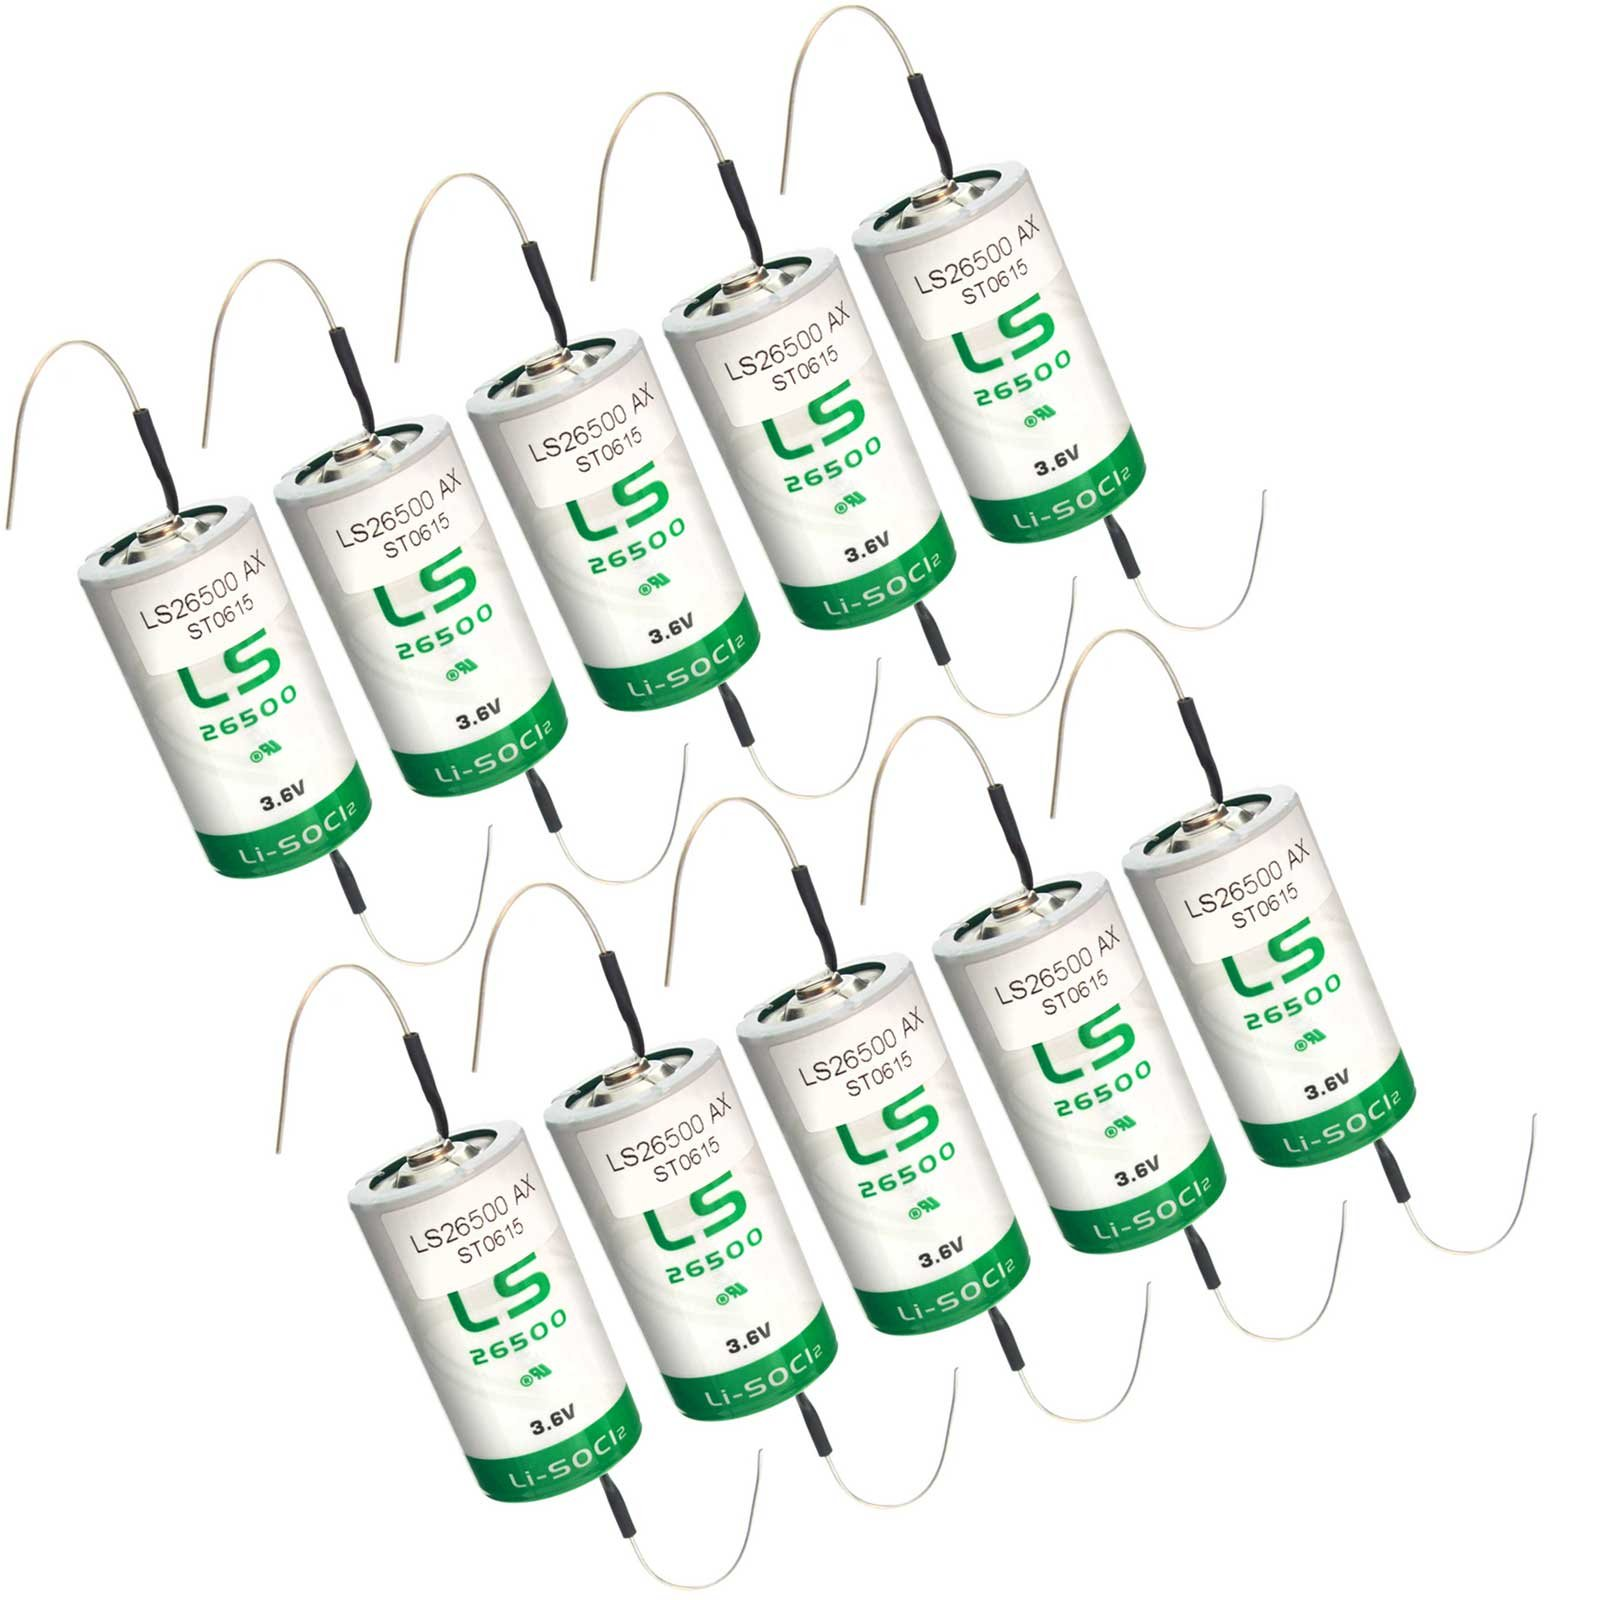 10x SAFT LS26500_AX Size C 3.6V 7700mAh Primary Lithium Cell for Xeno and more